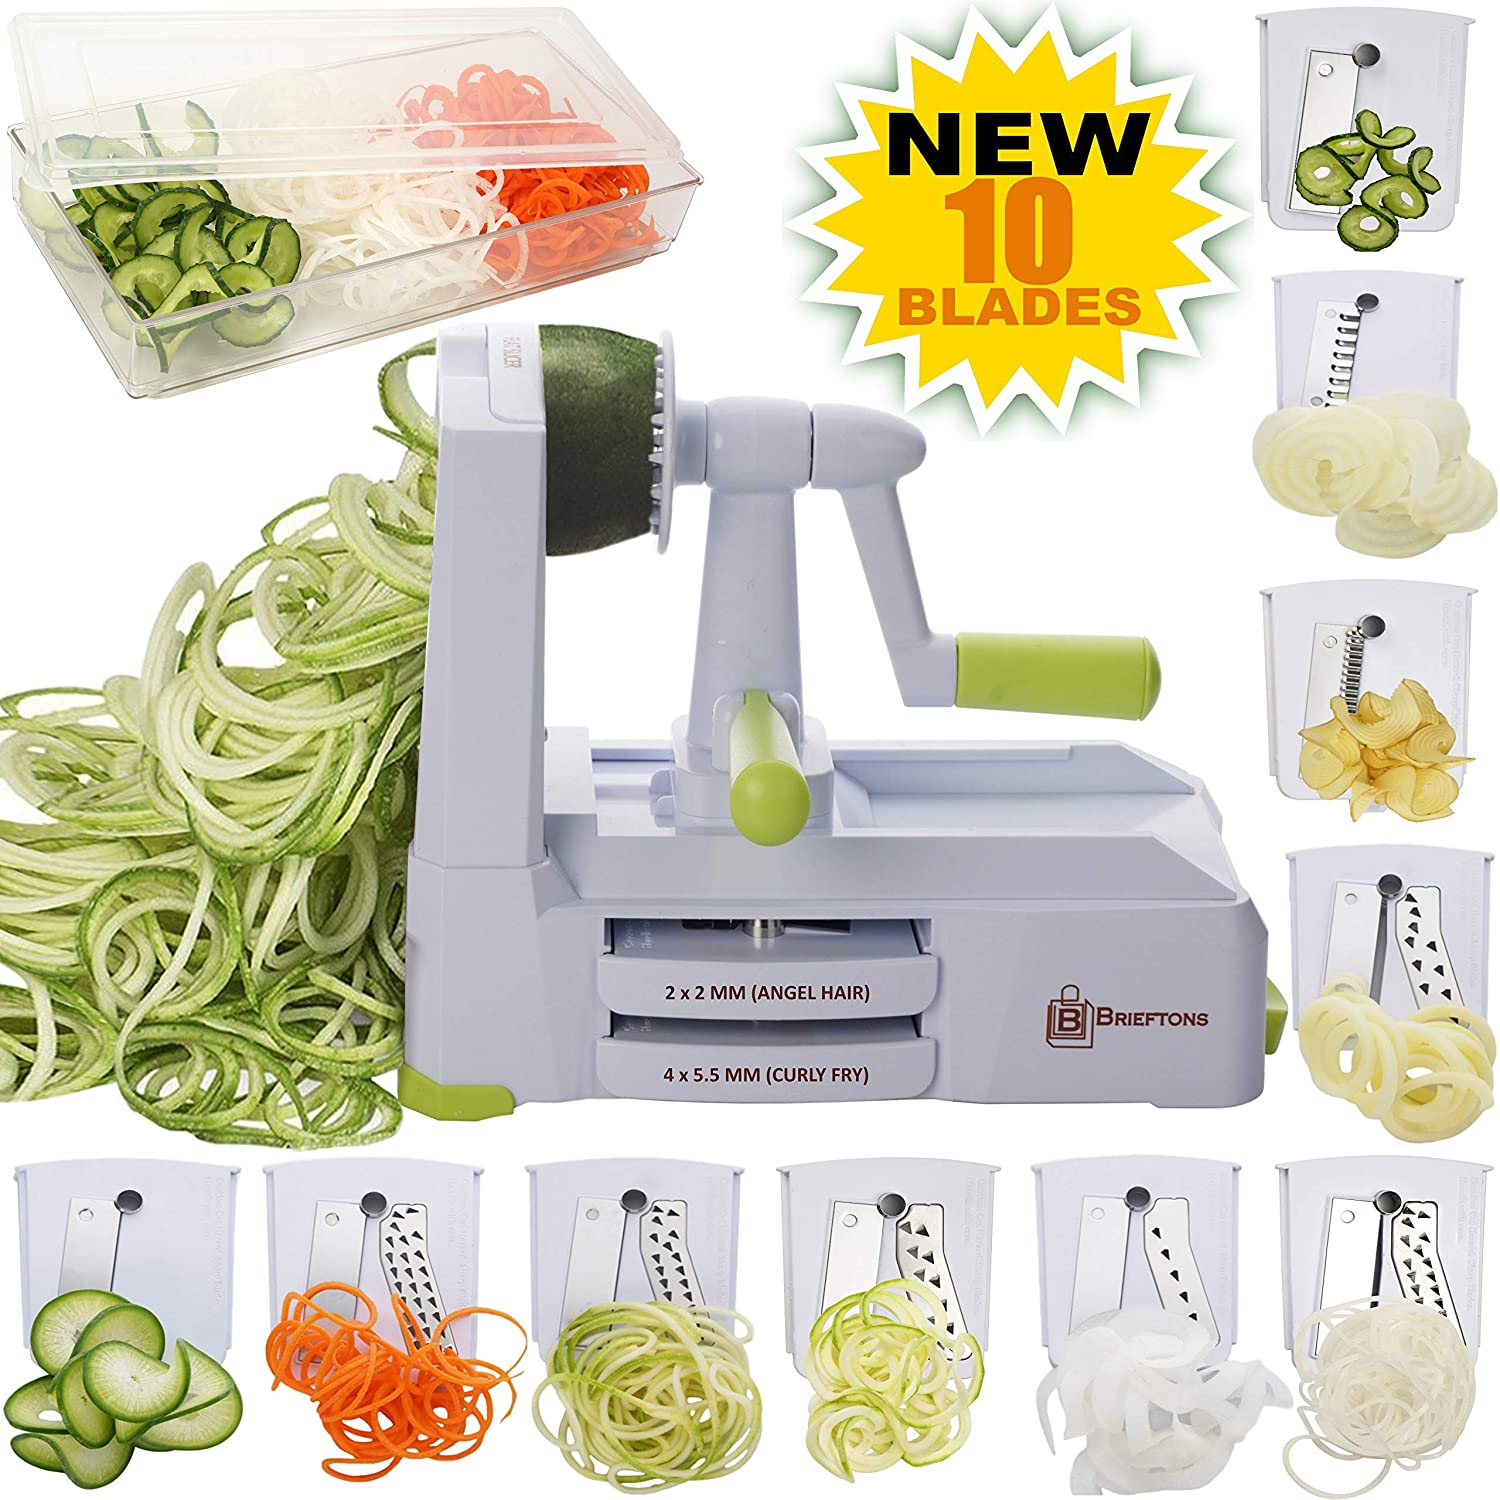 10-Blade Spiralizer Vegetable Spiral Slicer